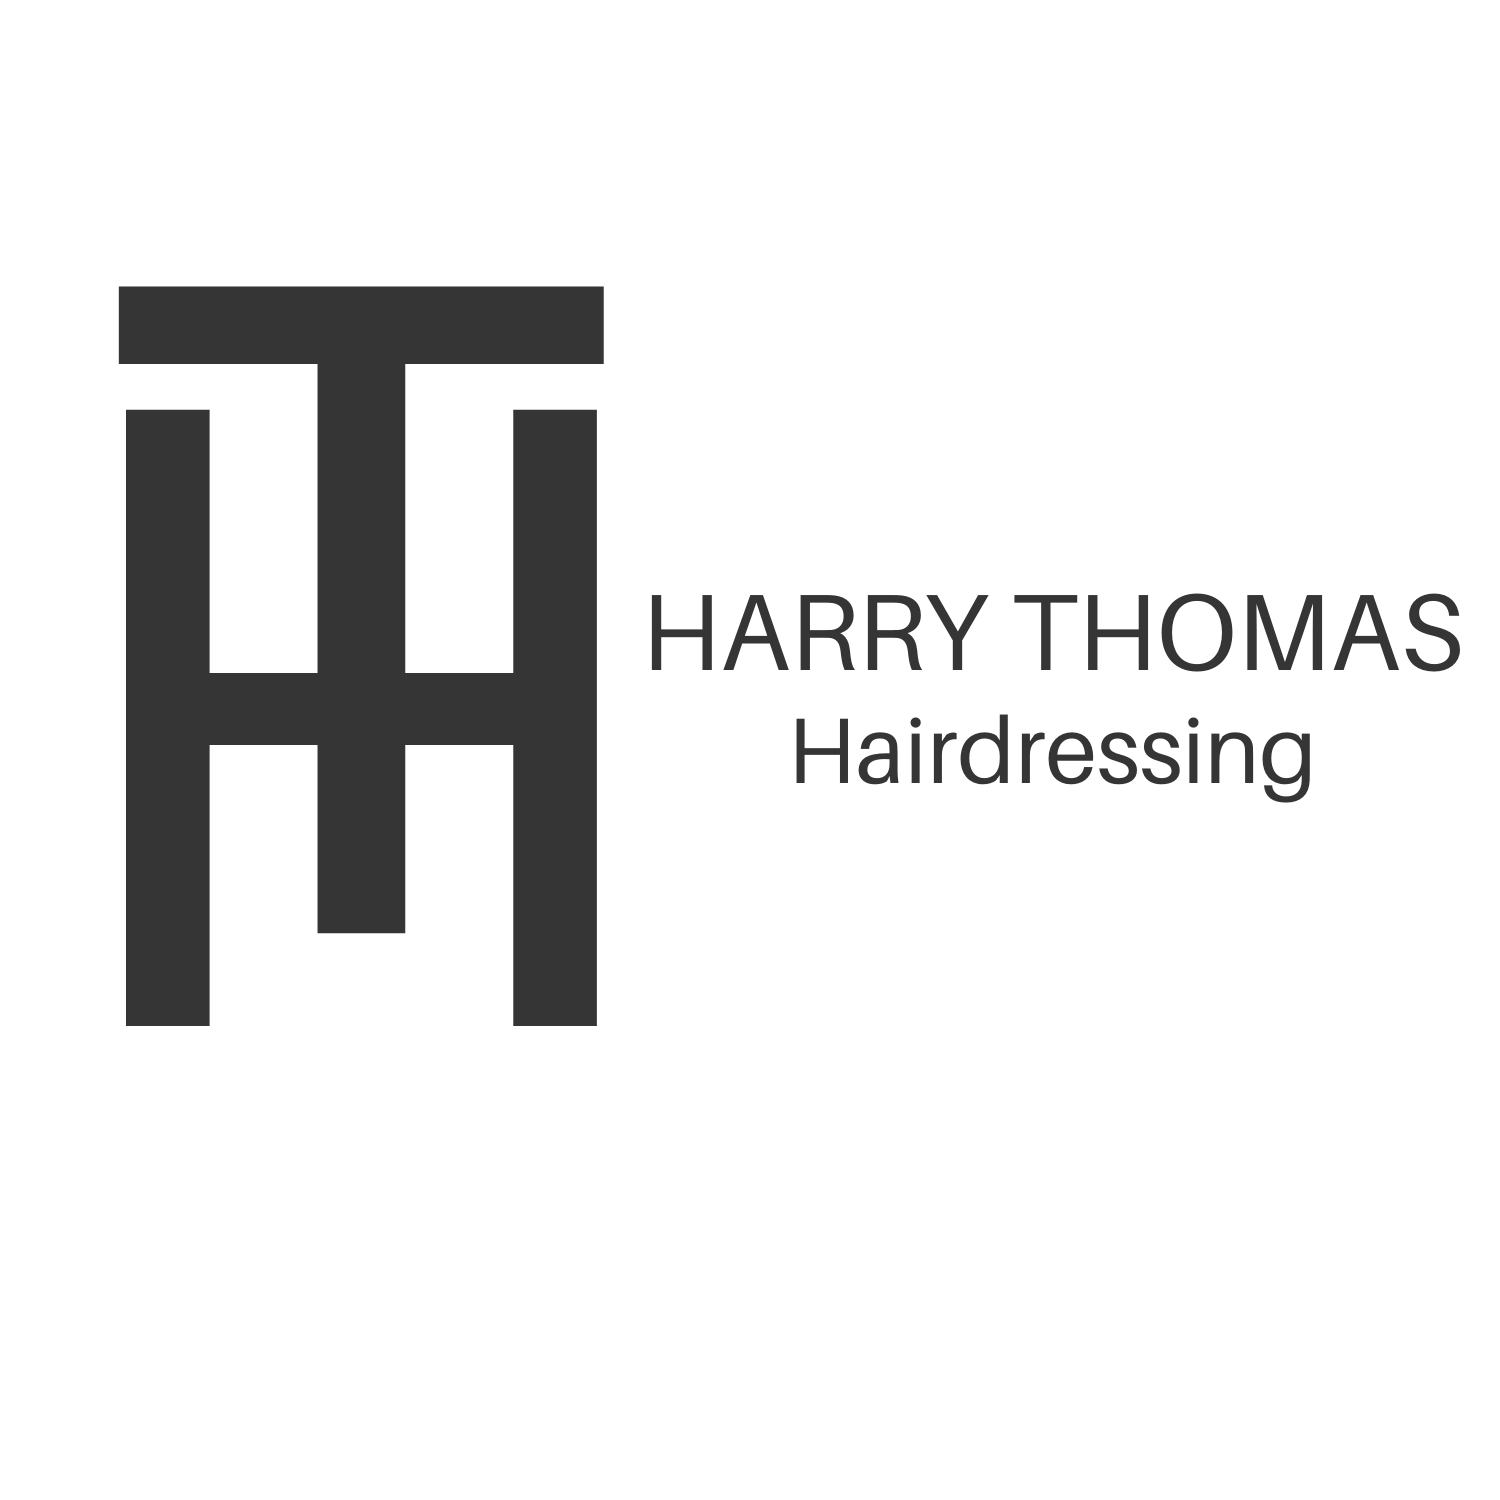 Harry Thomas Hairdressers